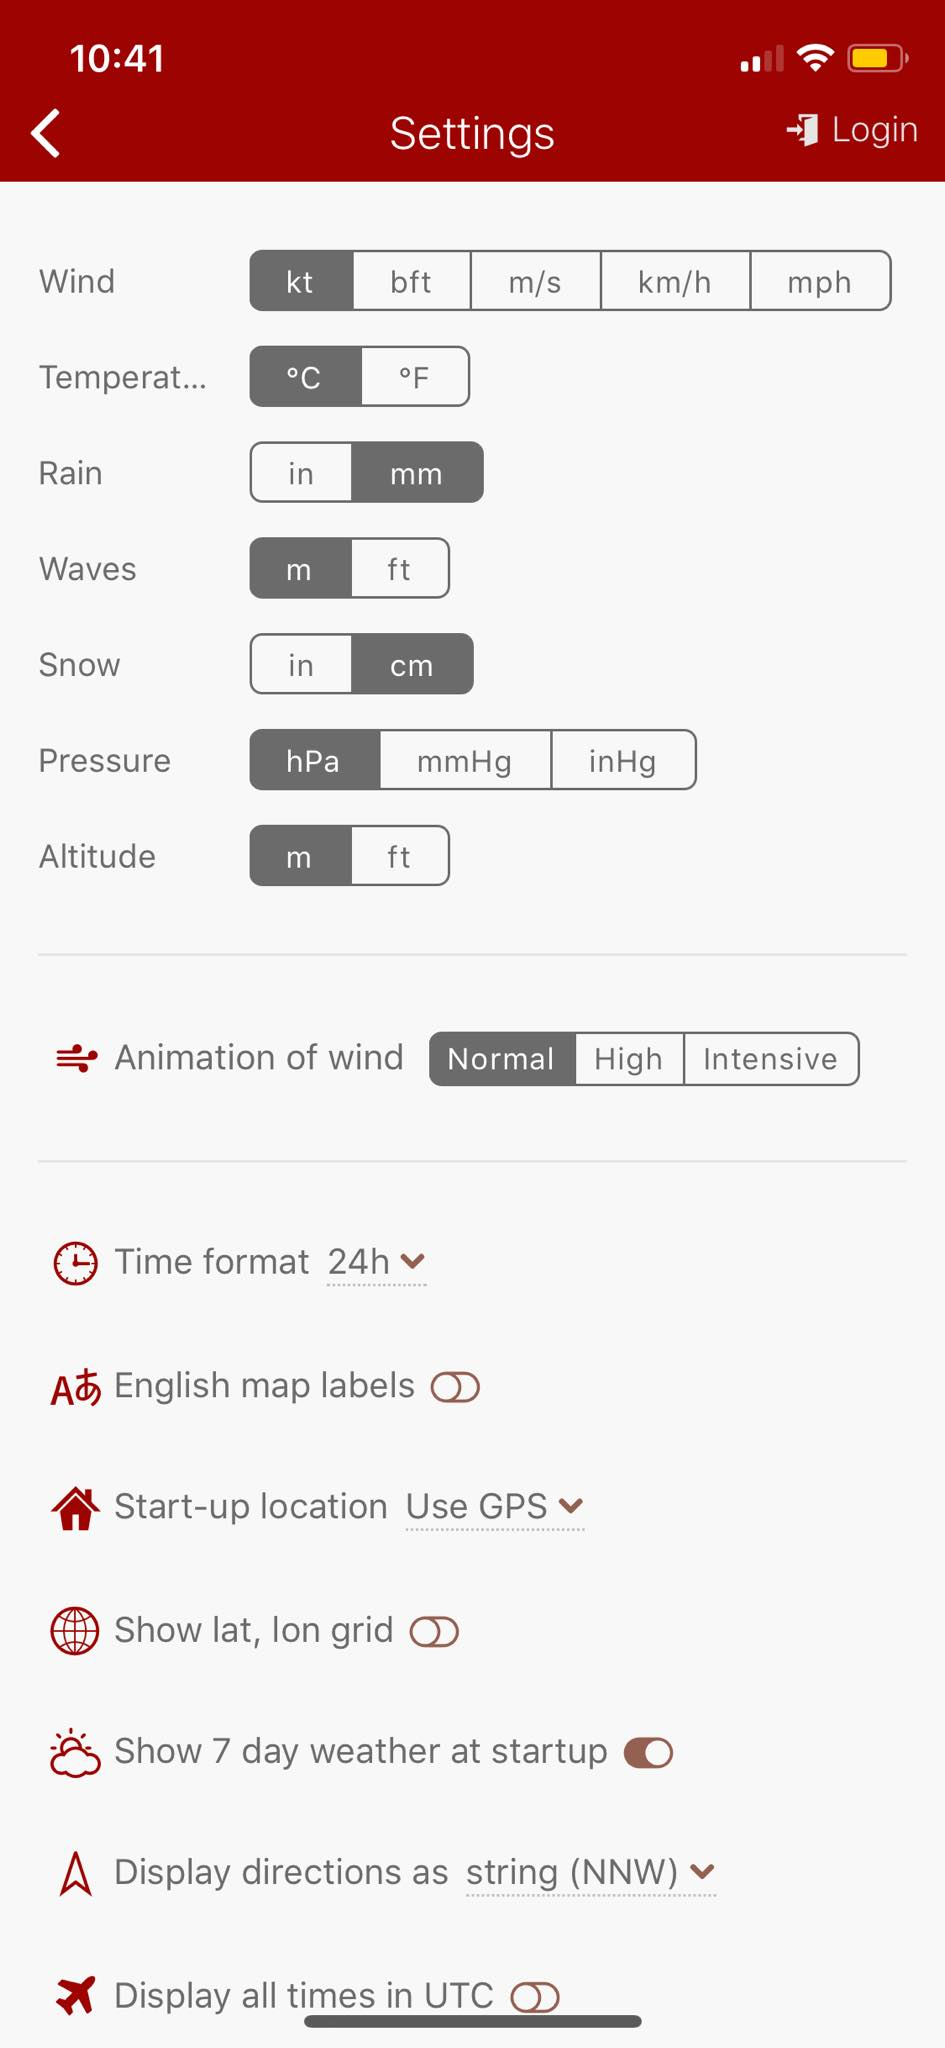 Settings on iOS by Windy from UIGarage